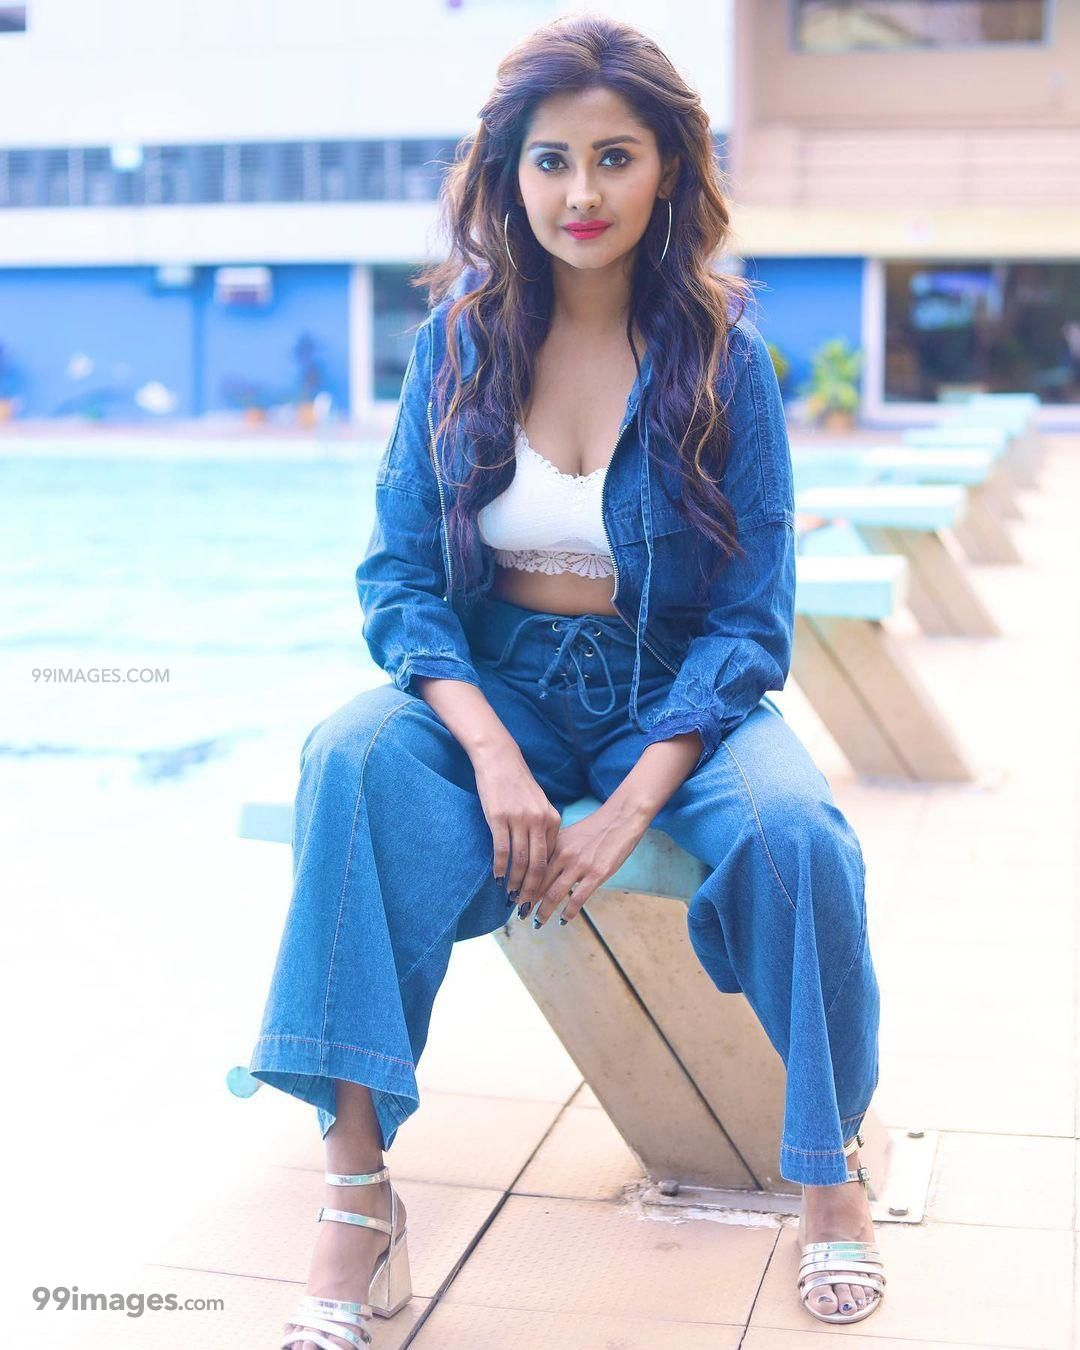 Kanchi Singh HD Wallpapers (Desktop Background / Android / iPhone) (1080p, 4k)